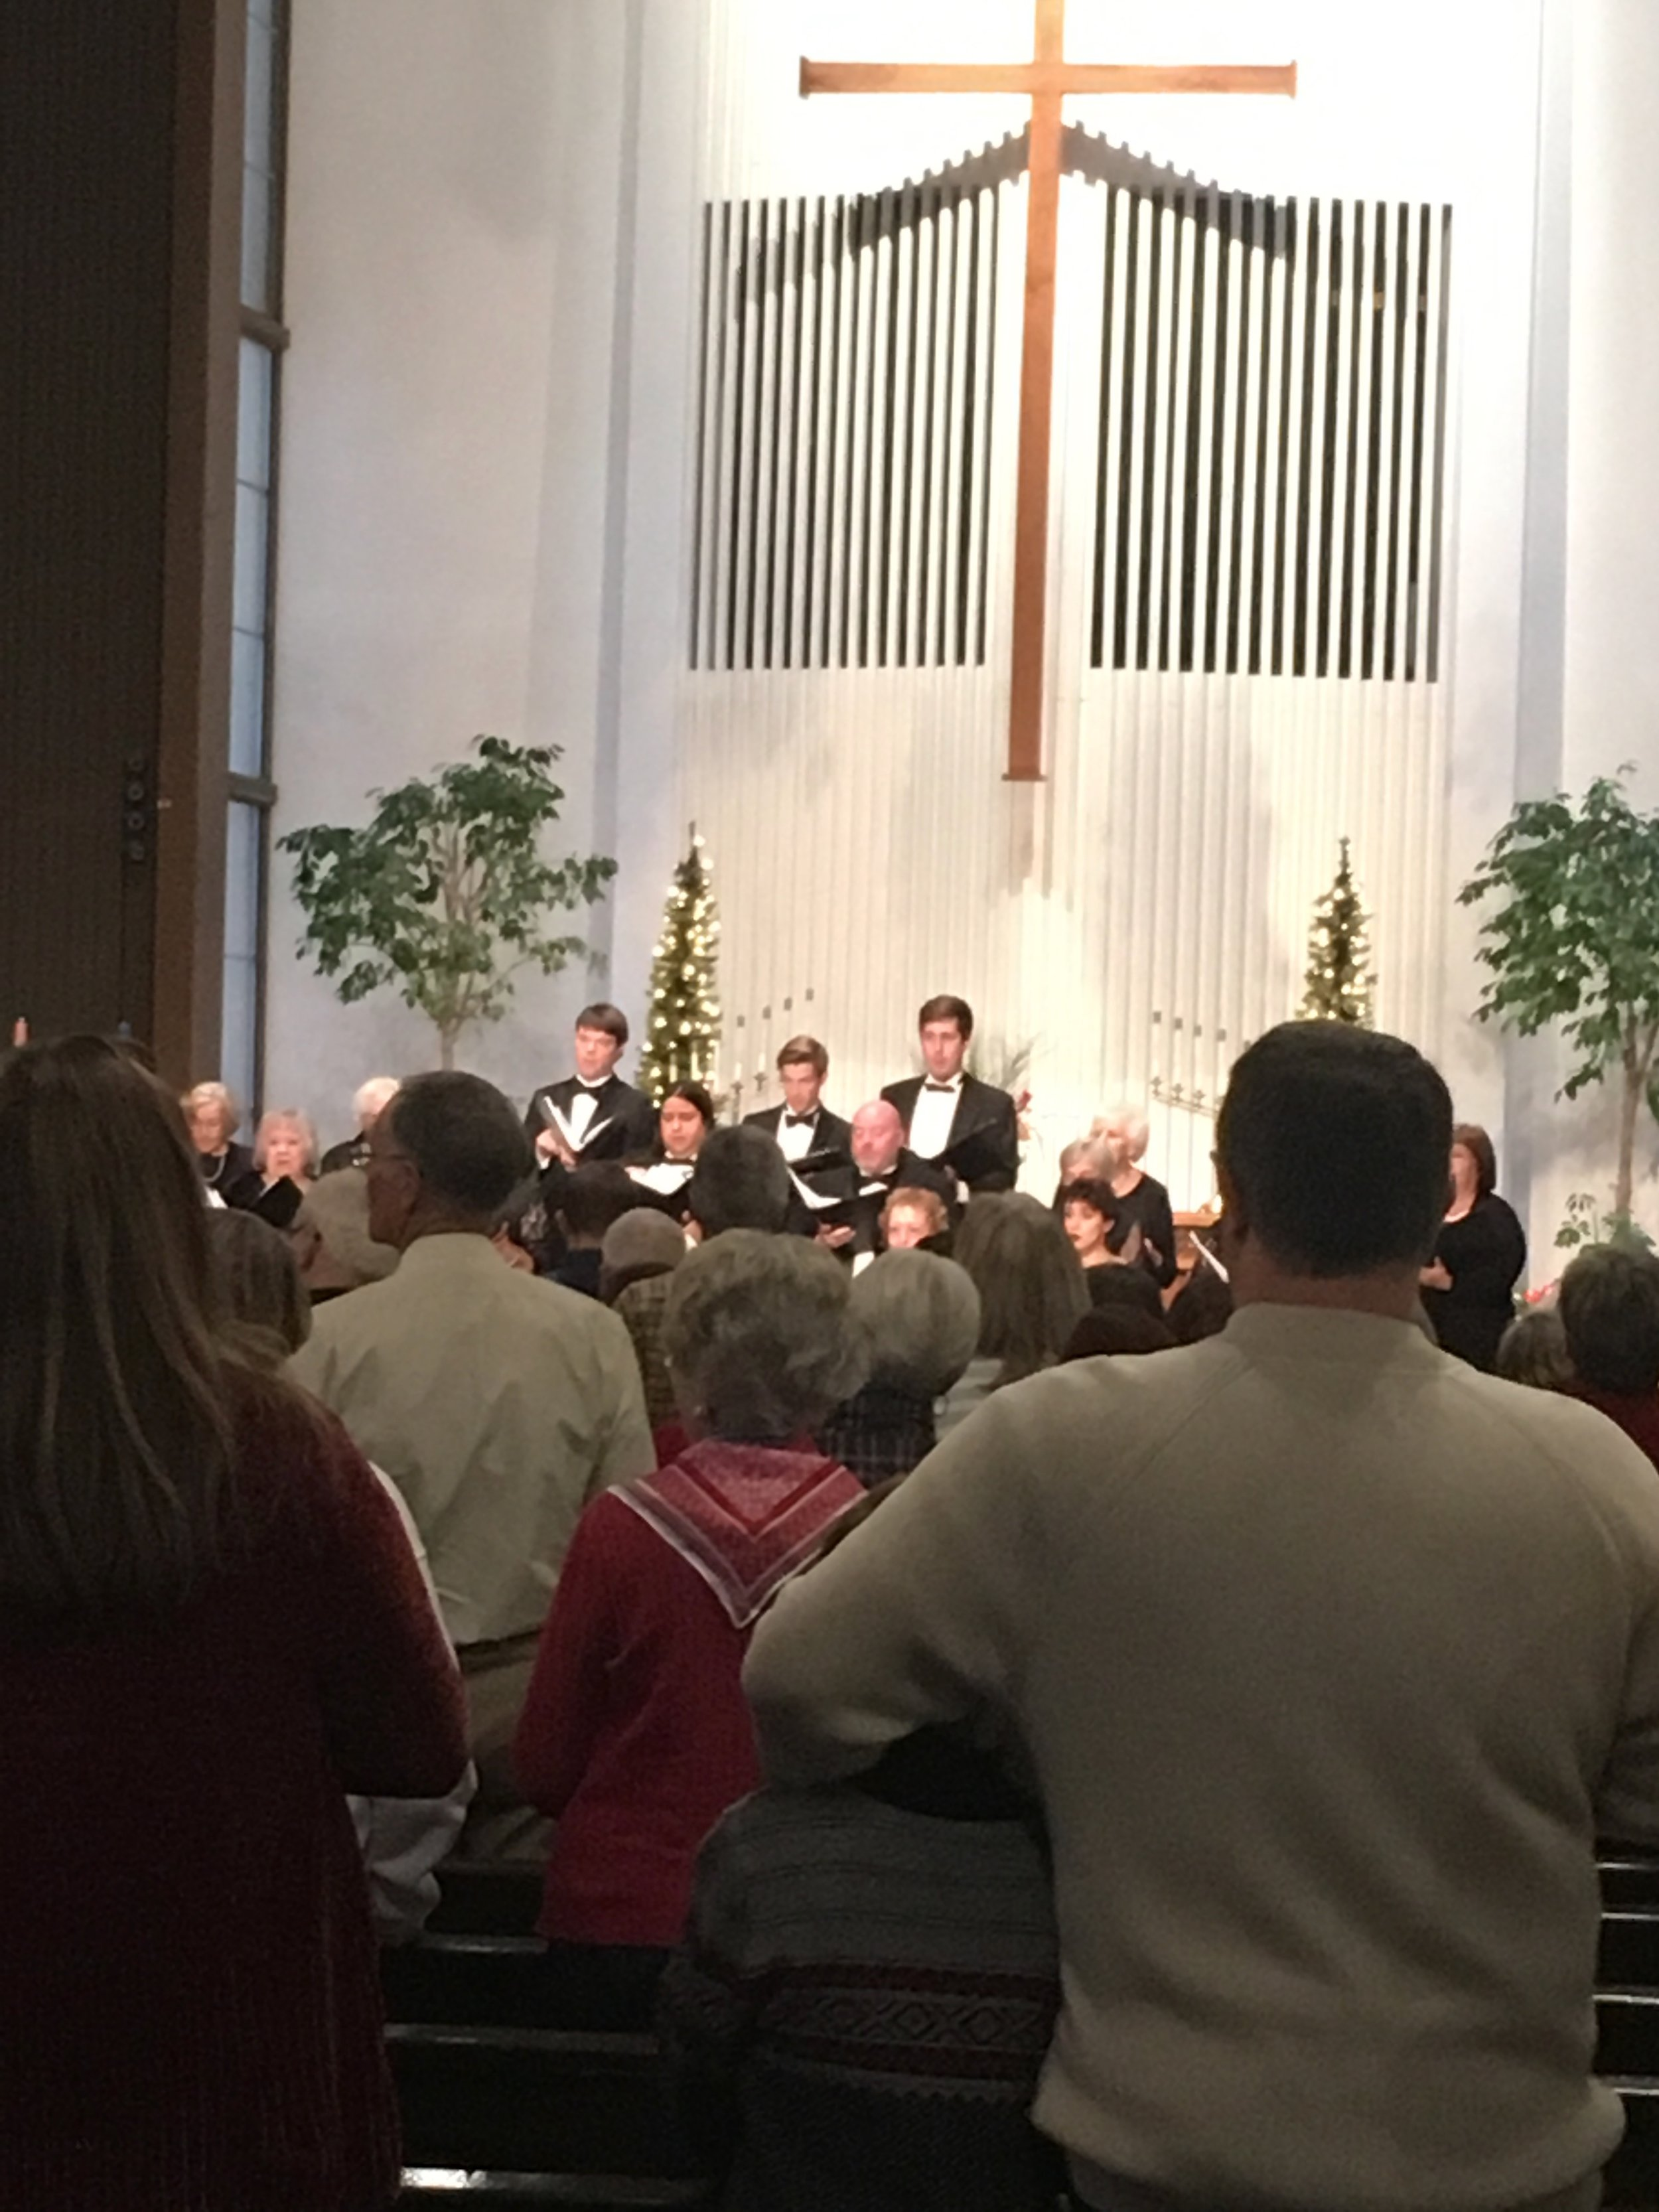 Enjoyed our church's annual Christmas concert. Superb!